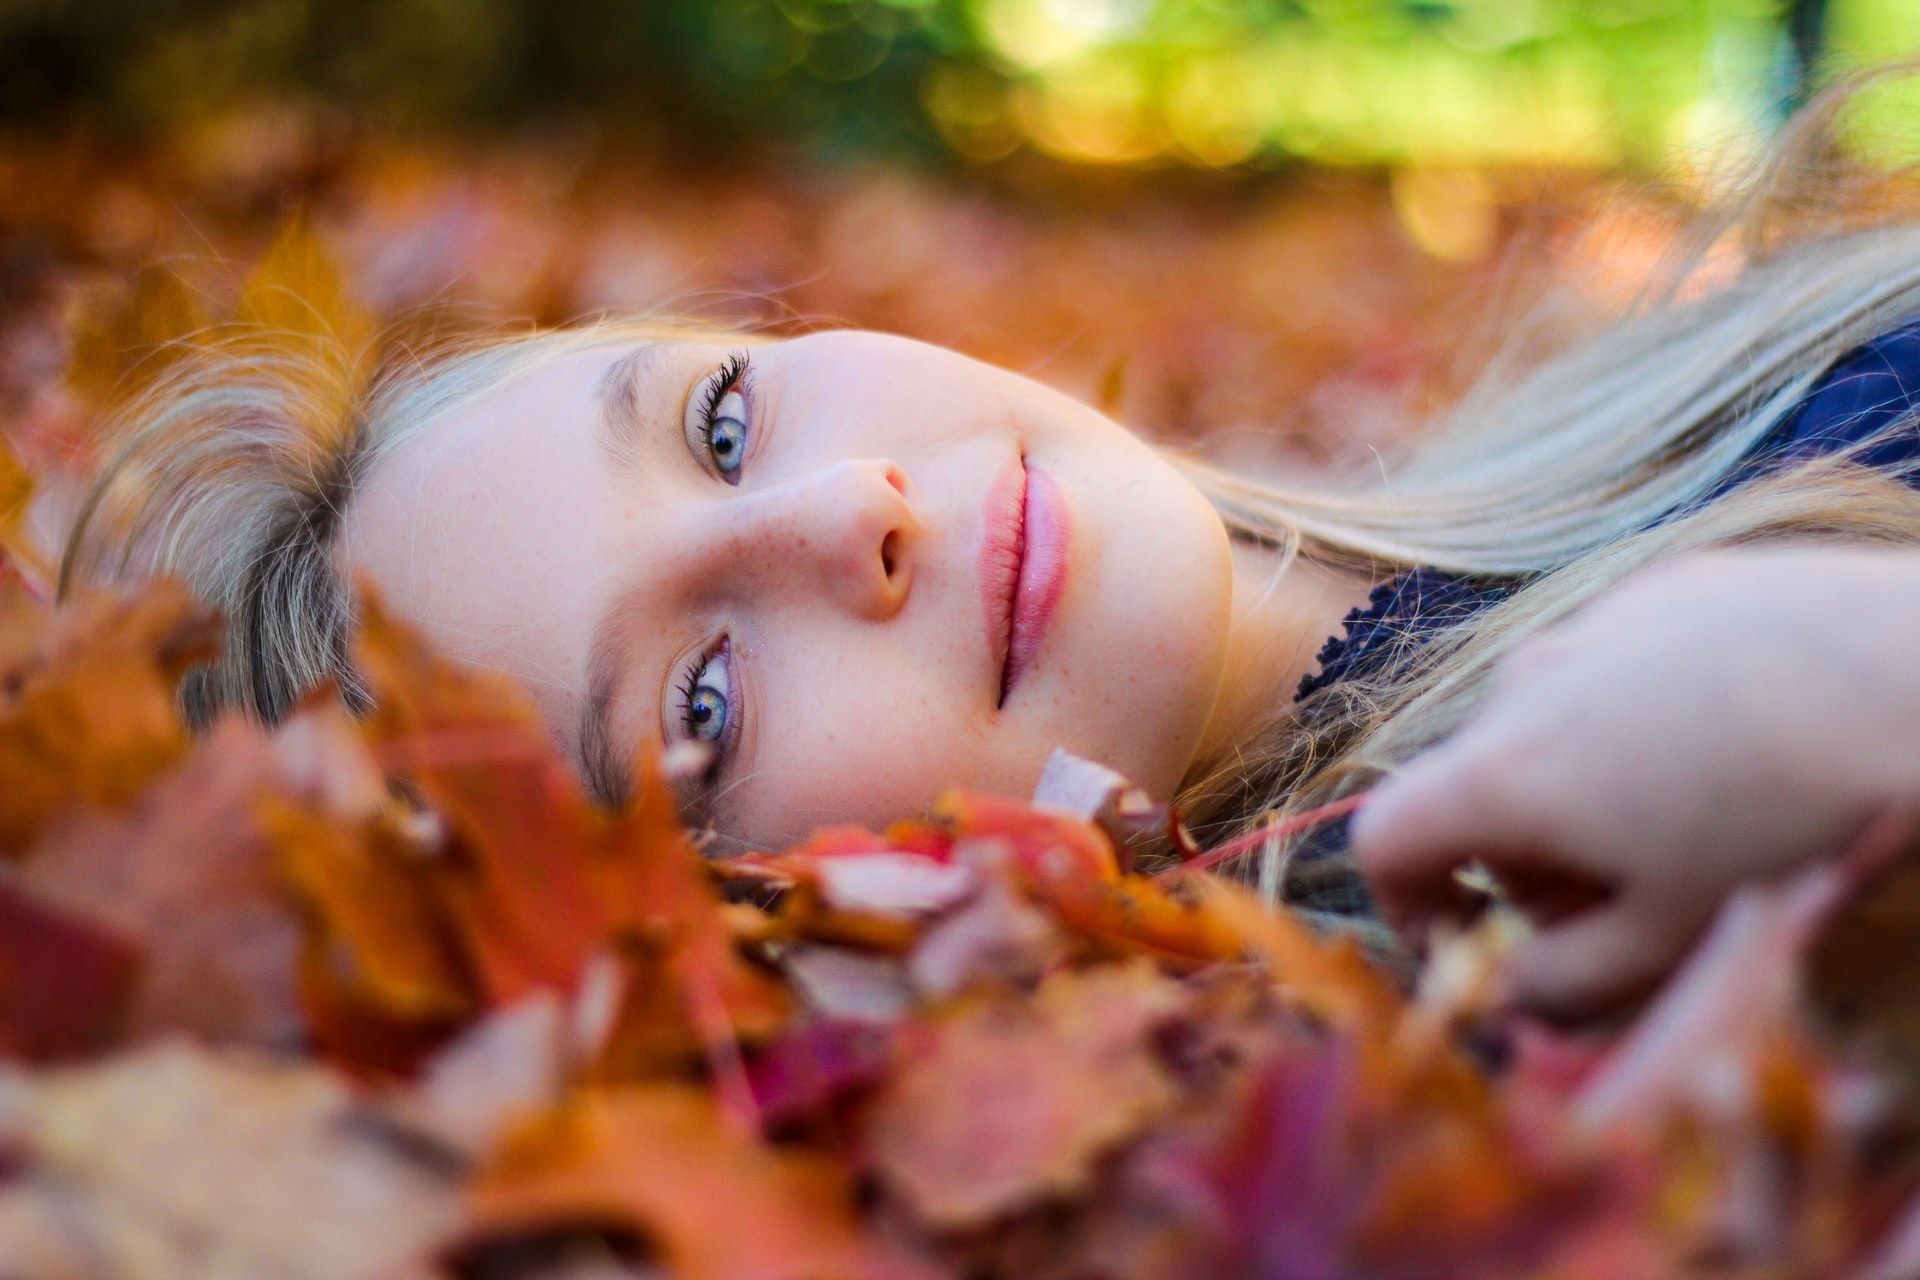 Person Lying On Ground Among Autumnal Leaves, Healthy Skin